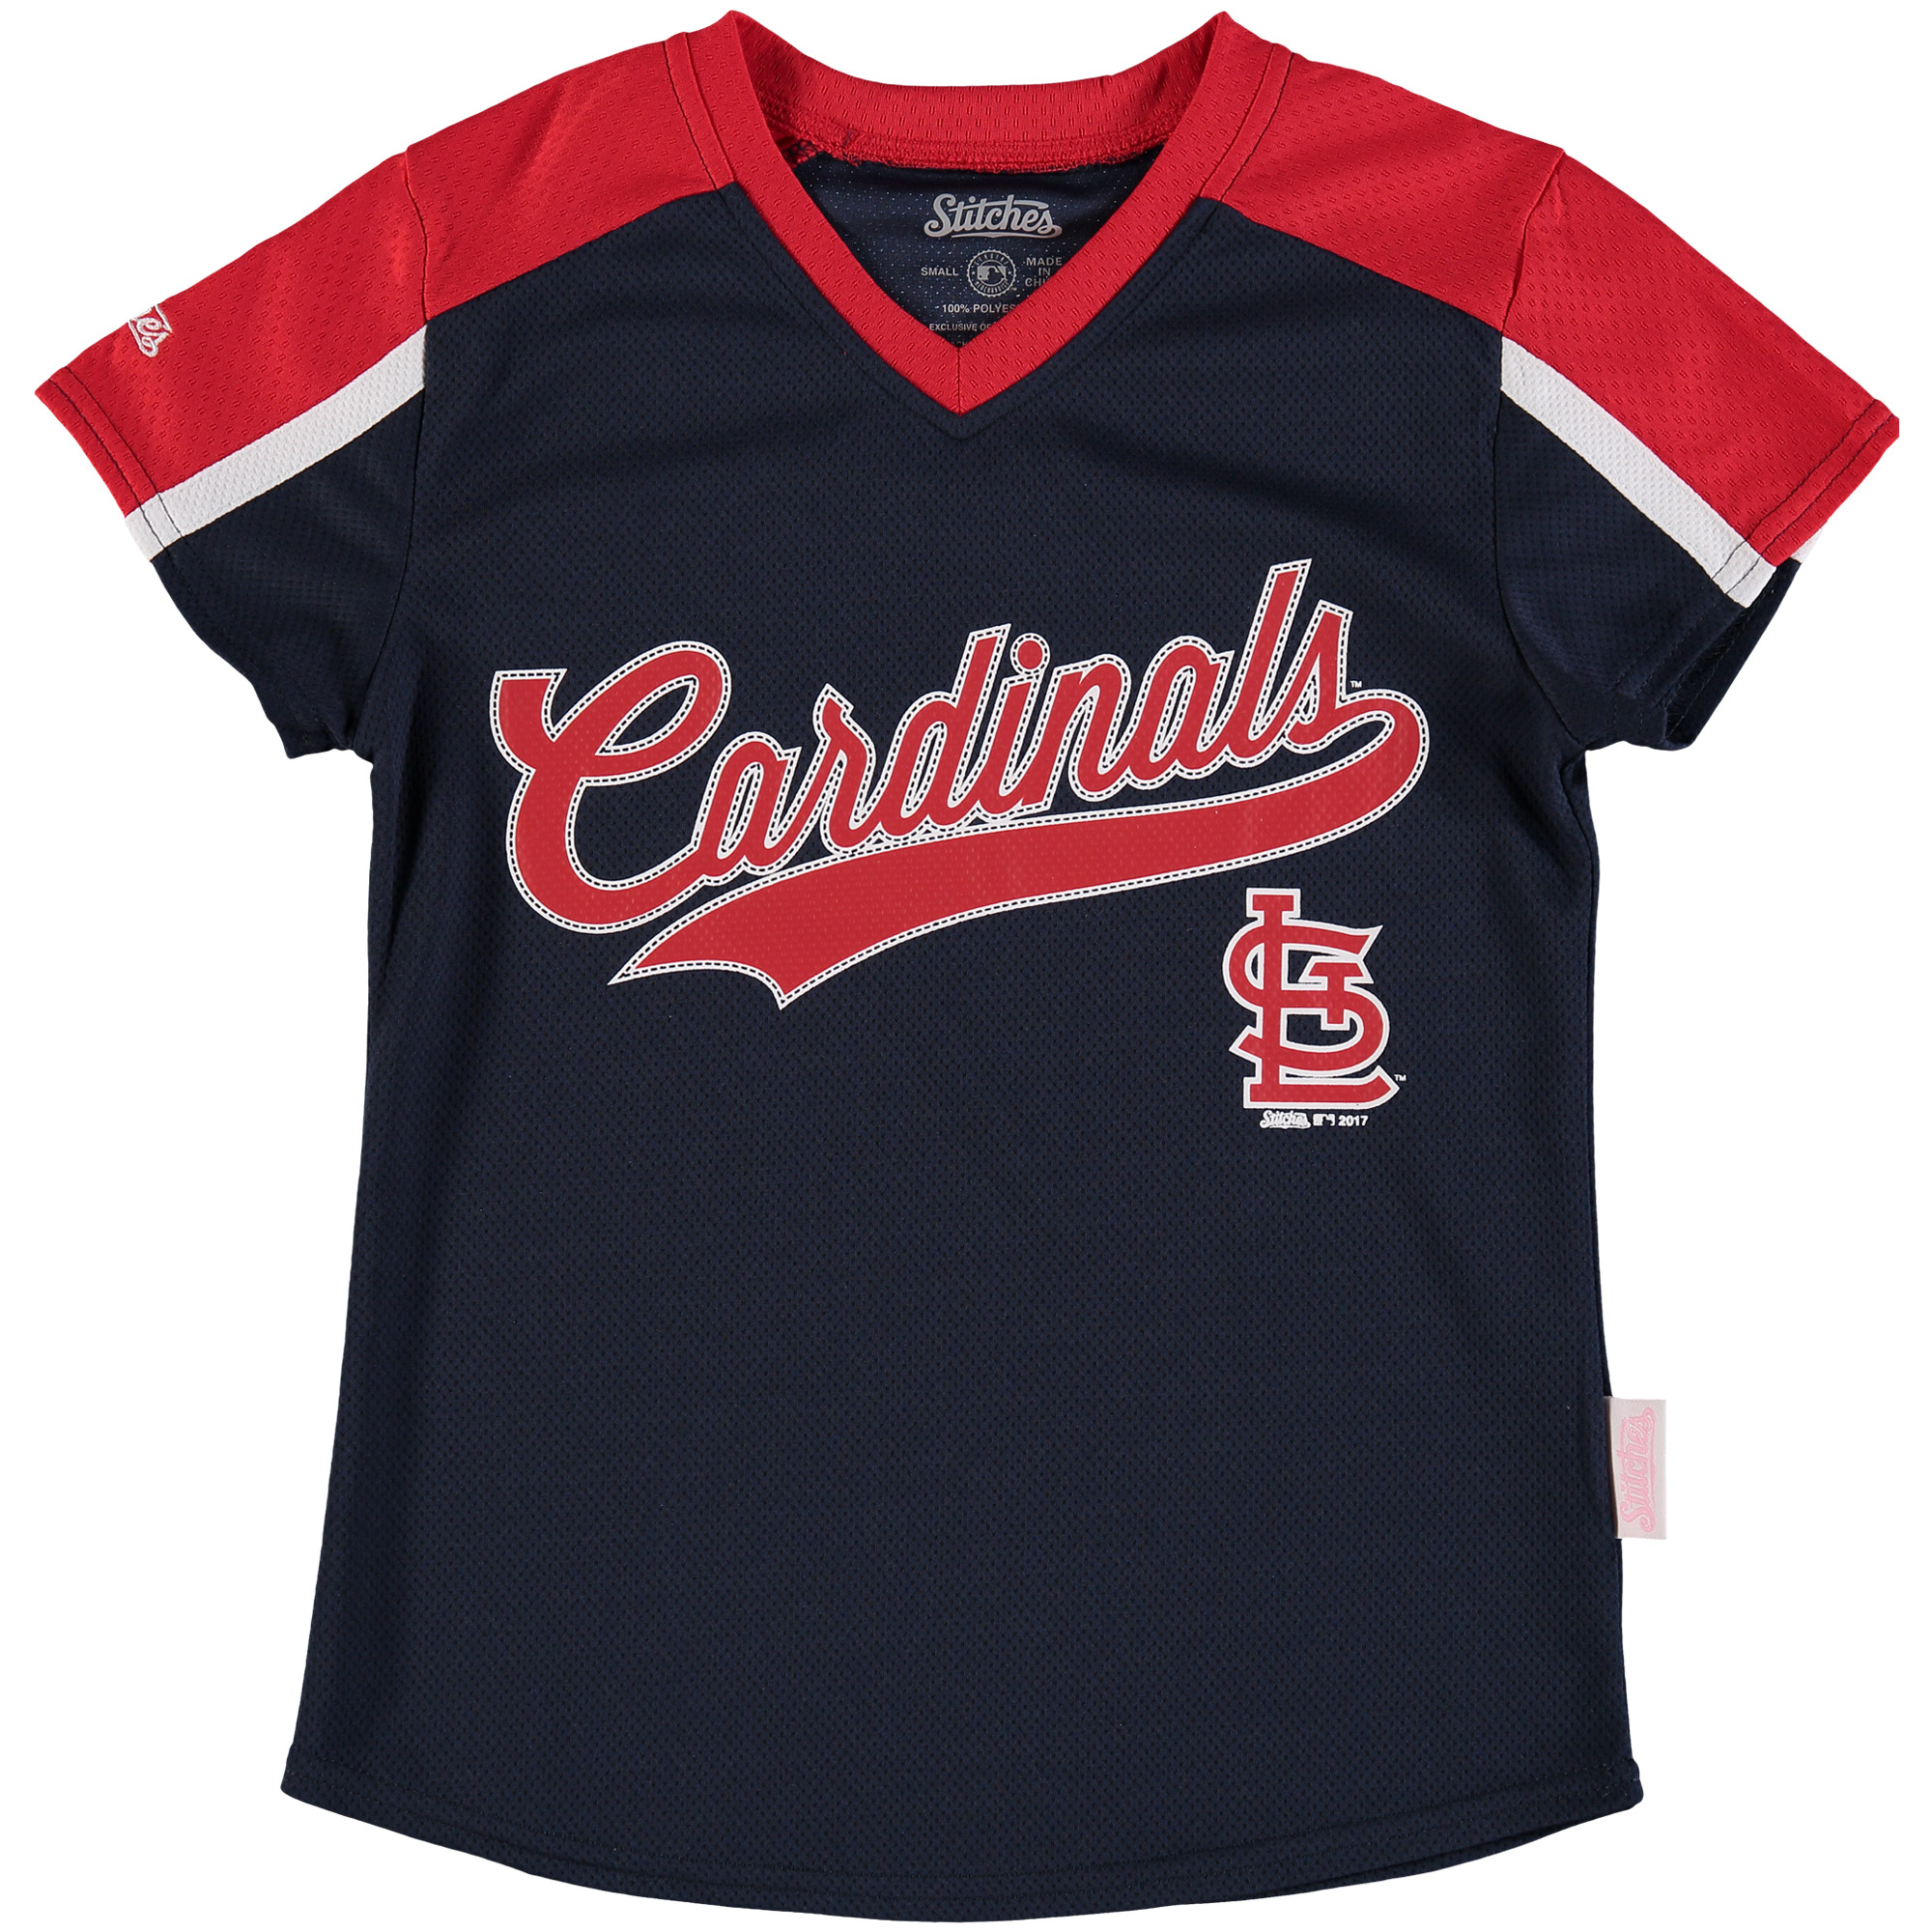 St. Louis Cardinals Stitches Girls Youth V-Neck Jersey T-Shirt - Navy/Red